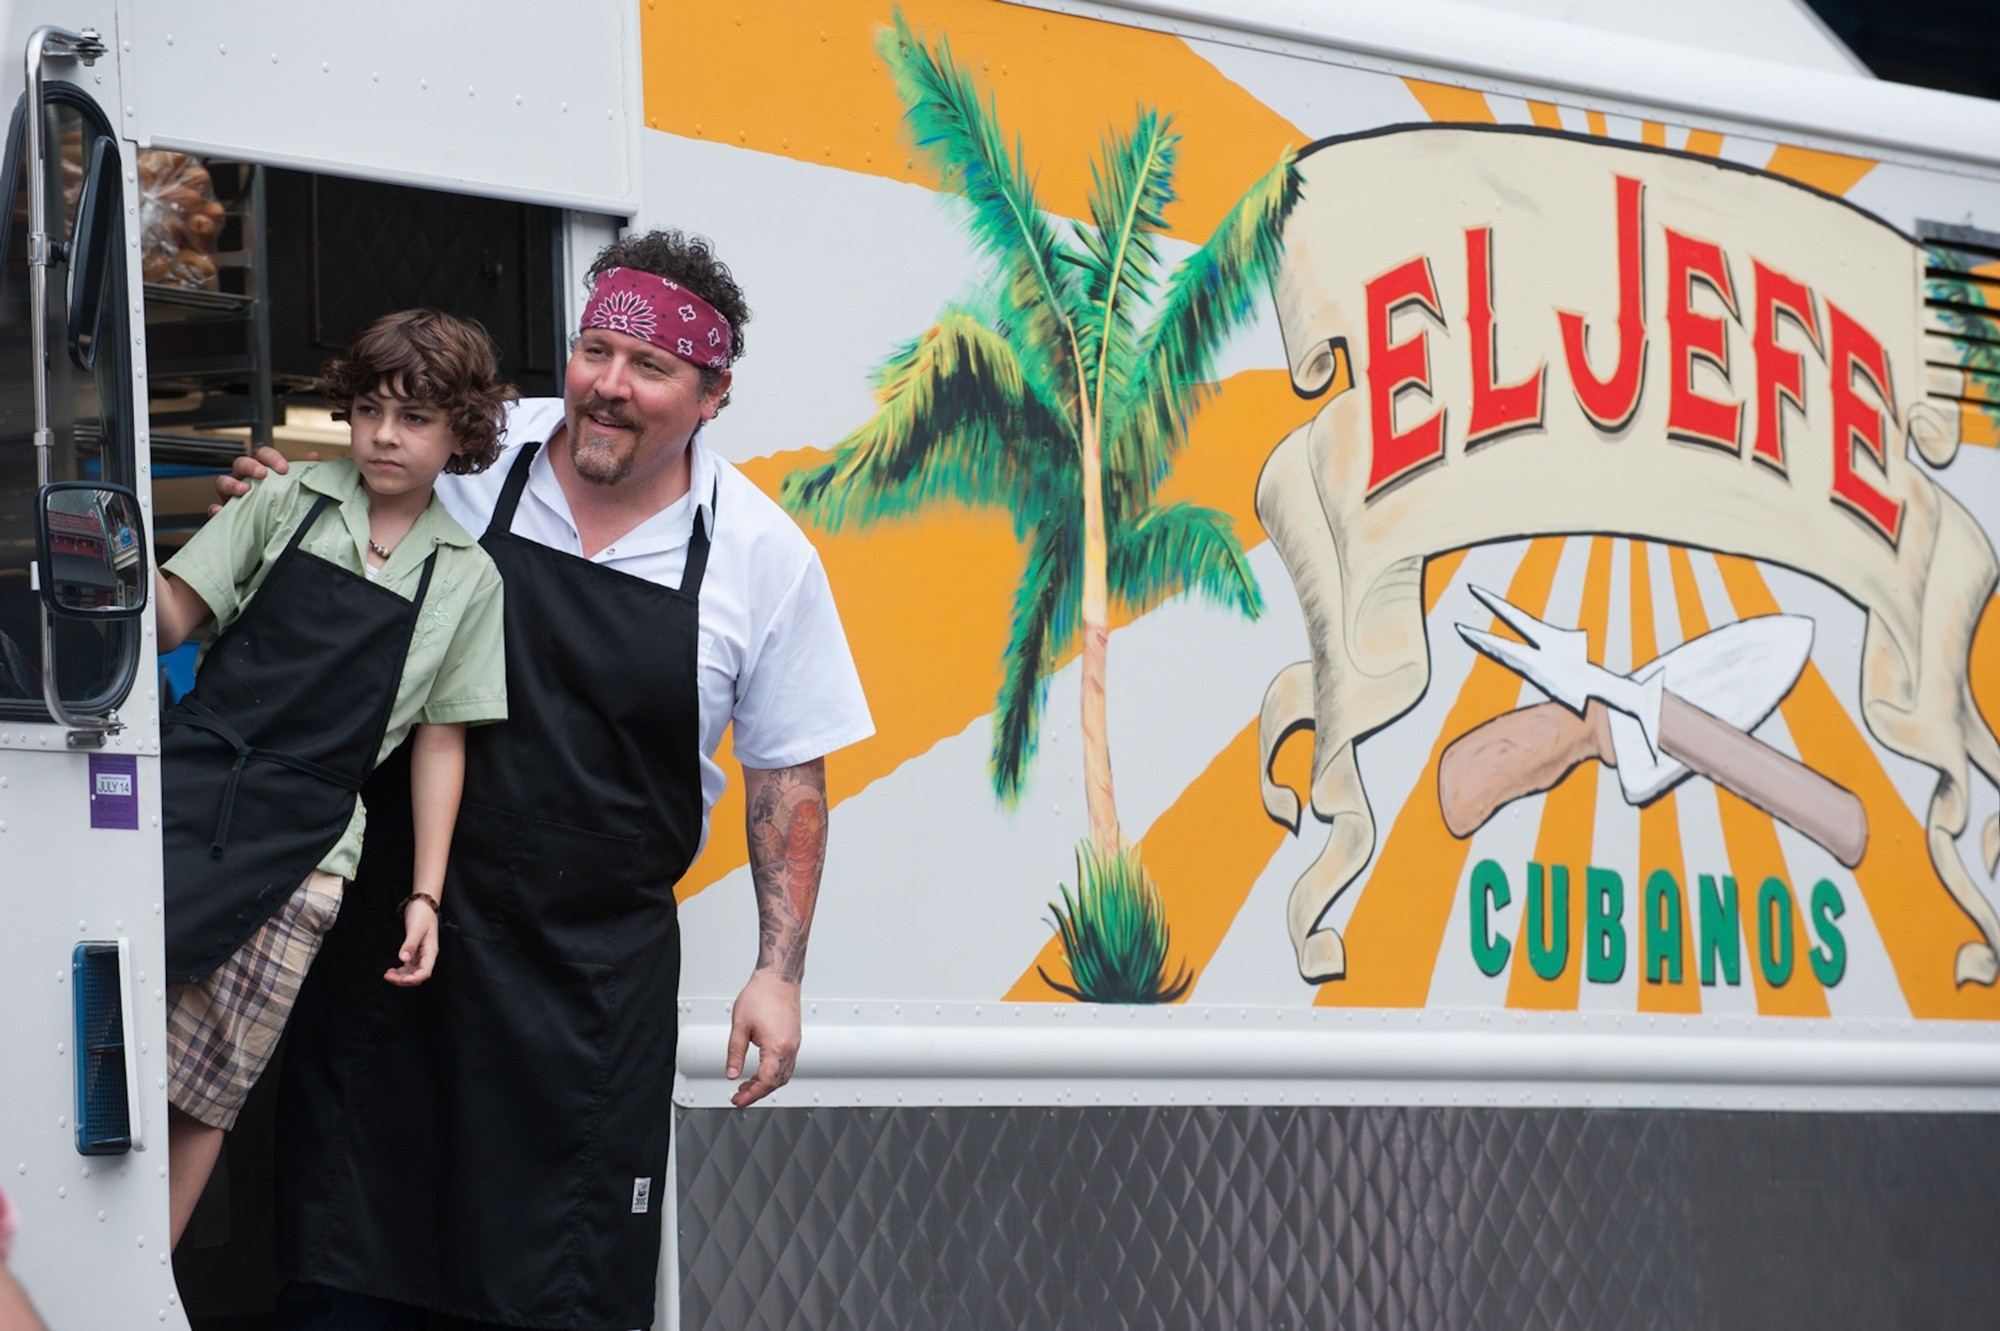 Jon Favreau as Chef in his food truck